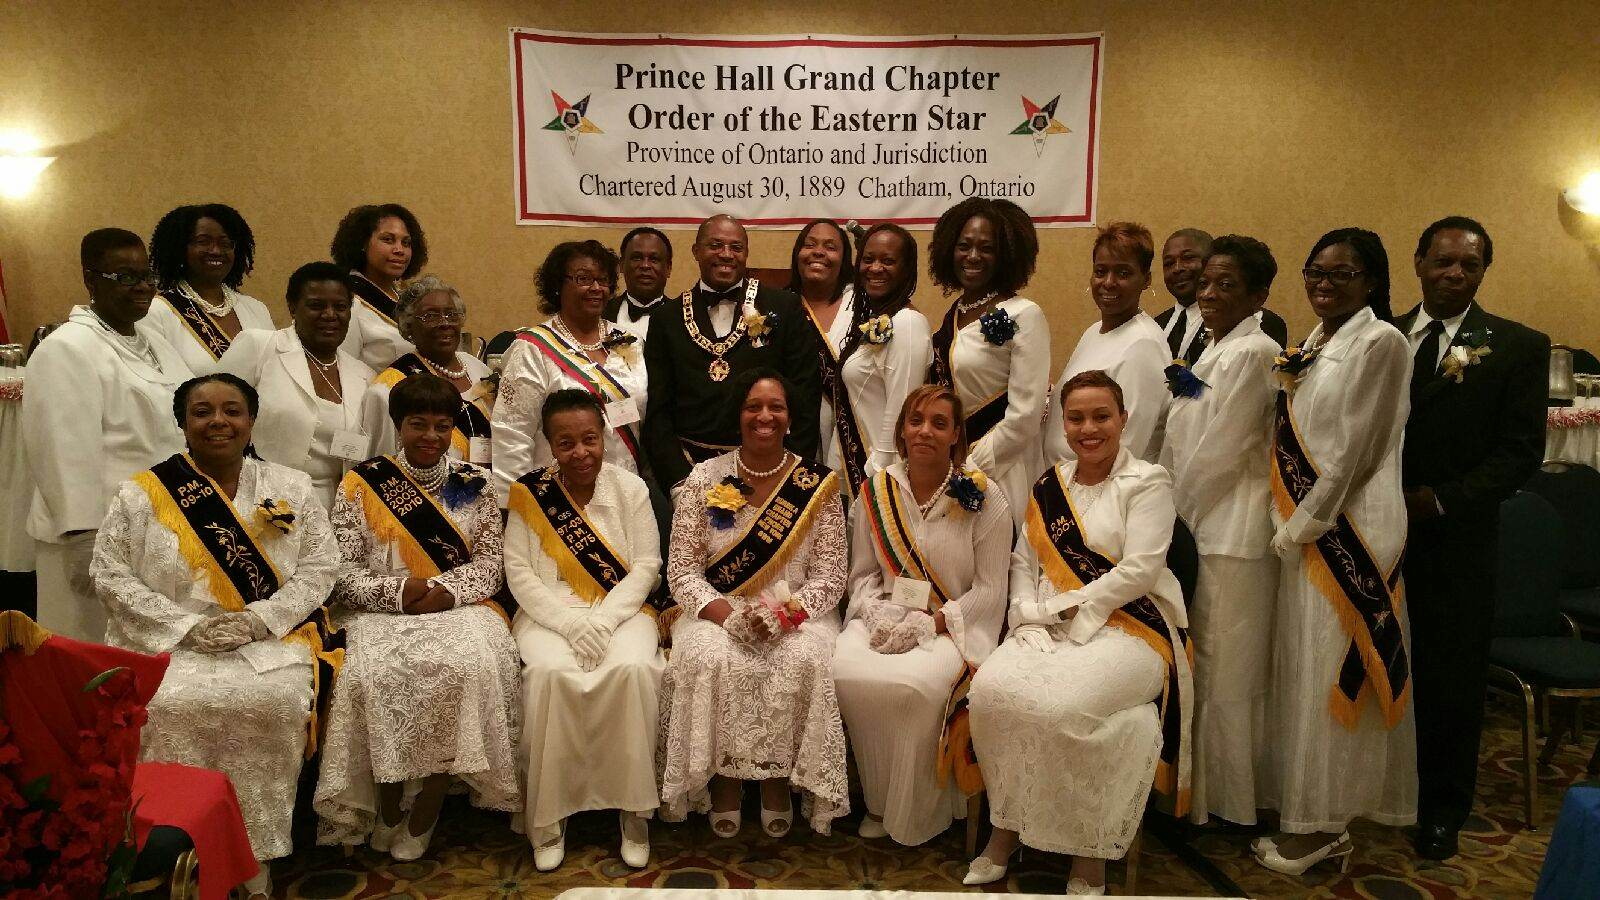 Prince Hall Grand Chapter Visitation - Ontario